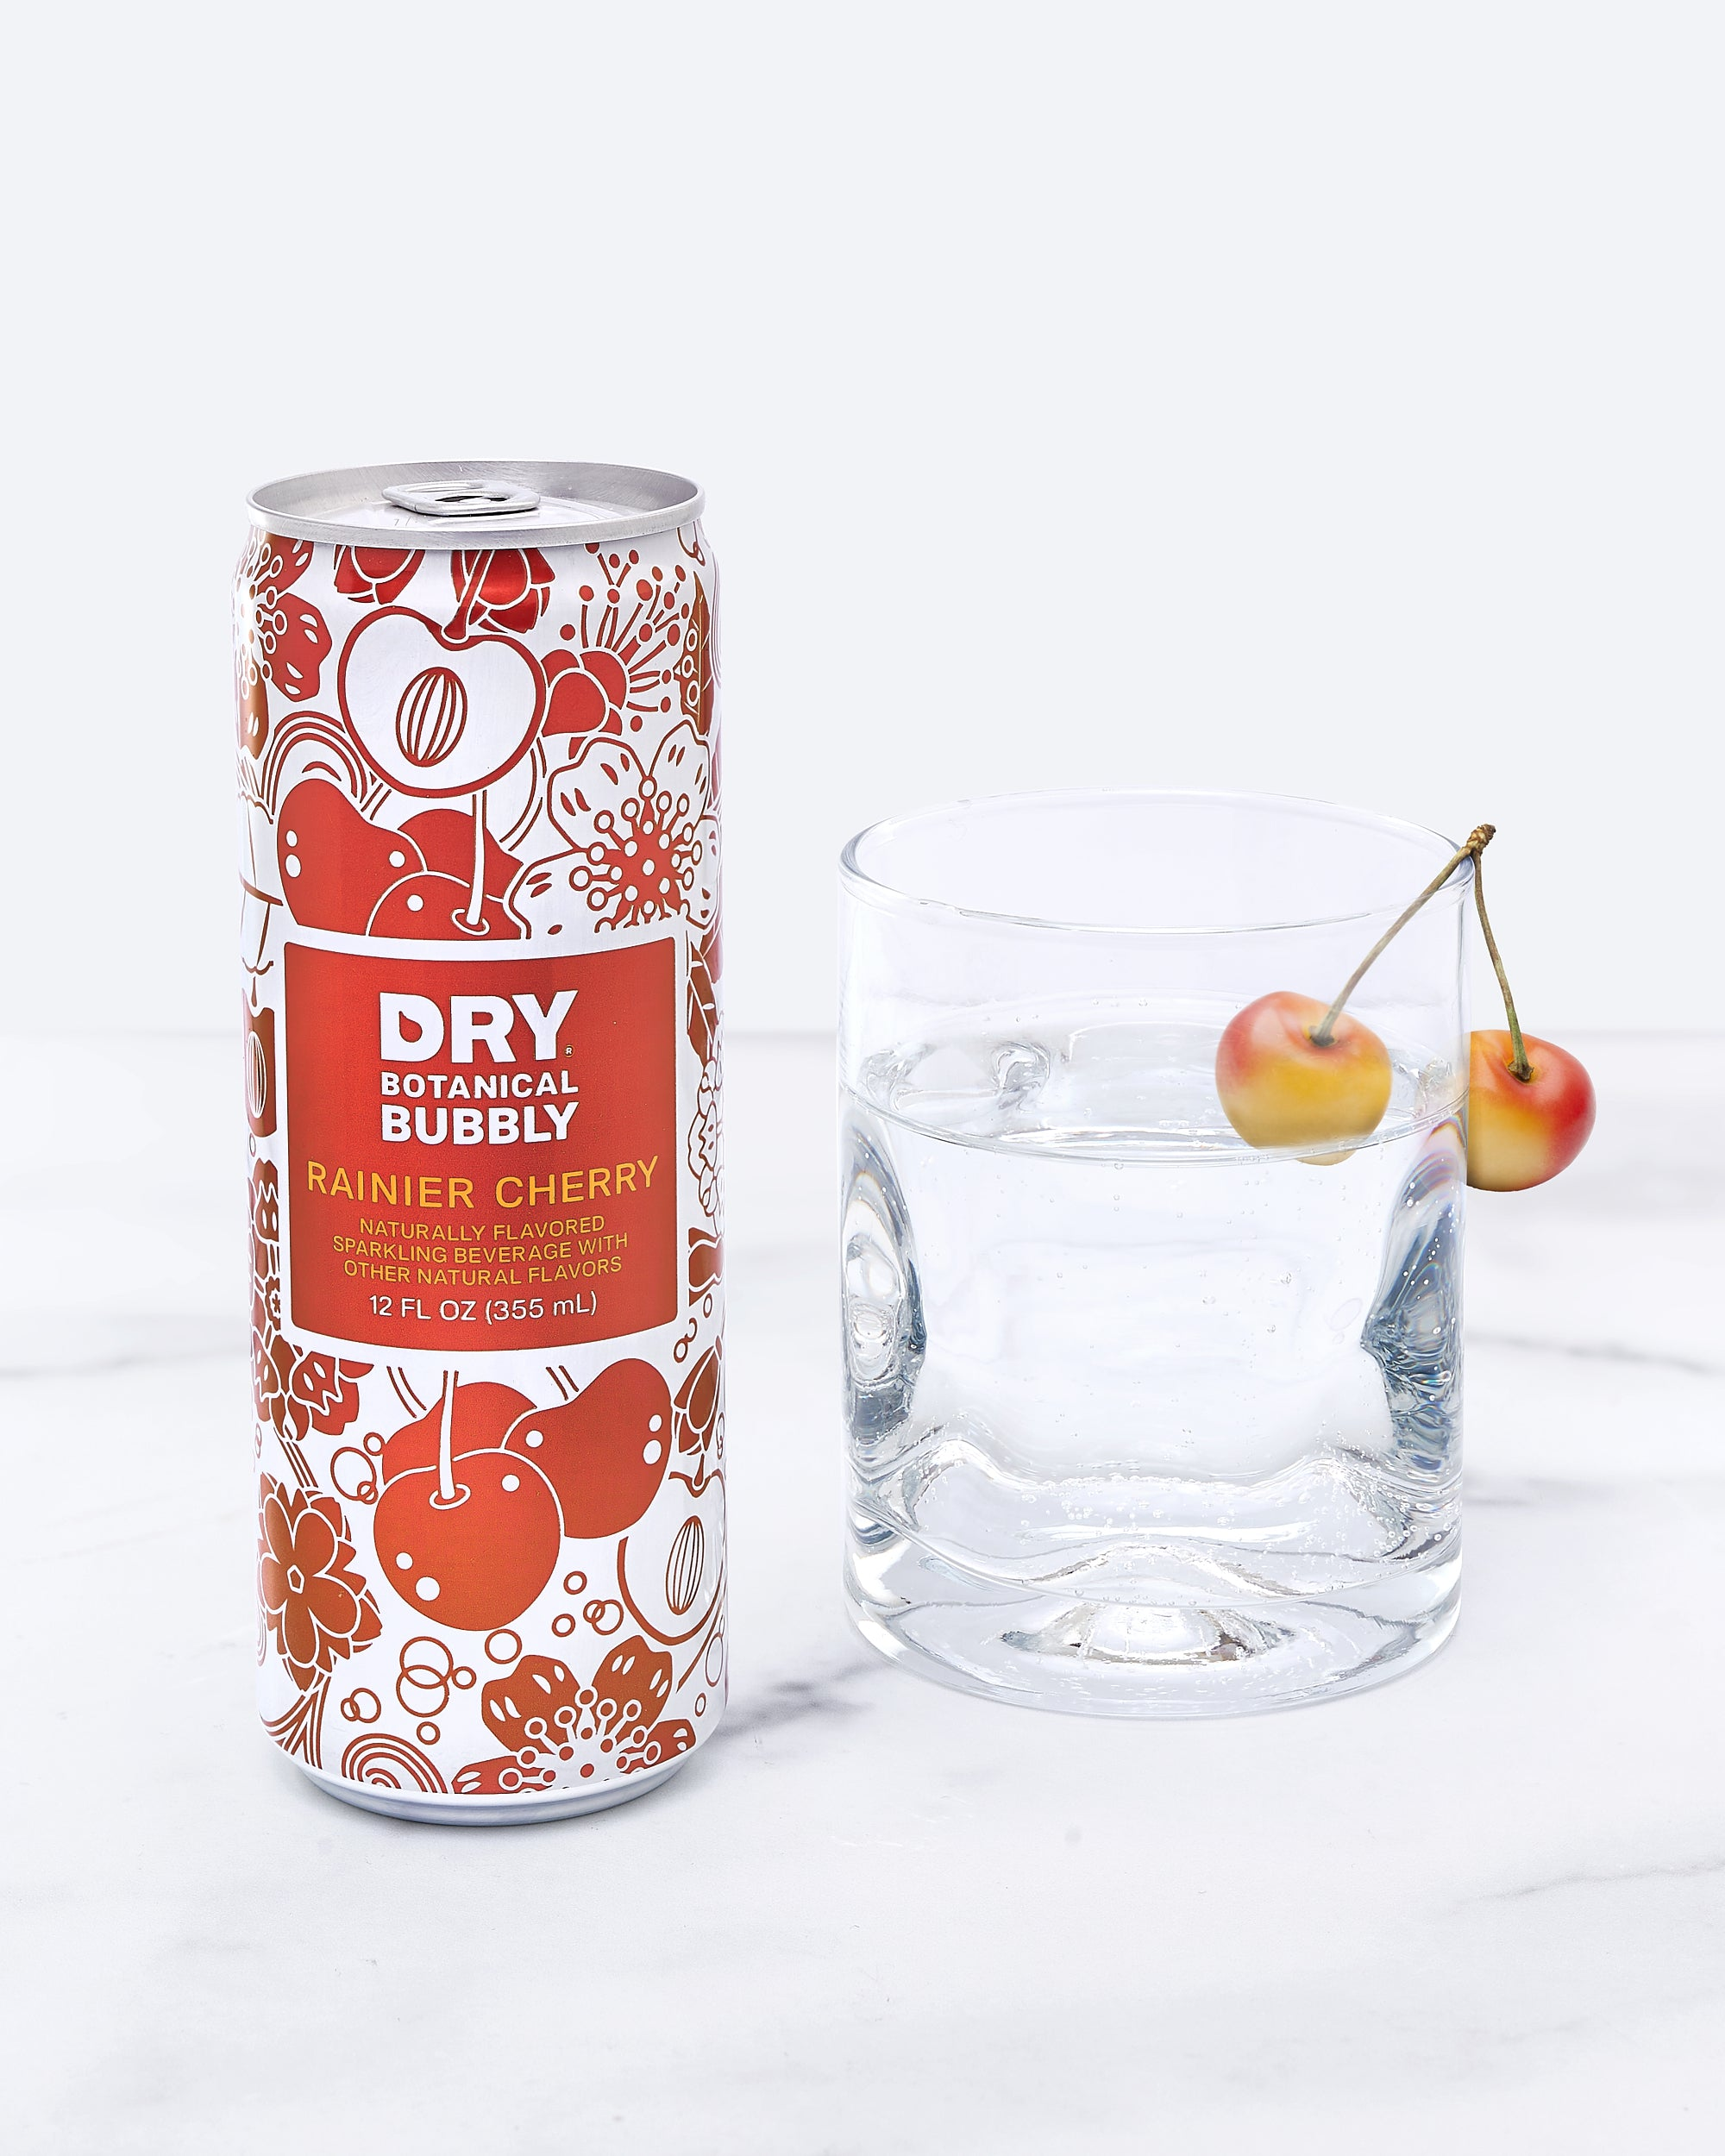 DRY Rainier Cherry Botanical Bubbly (12 Pack)